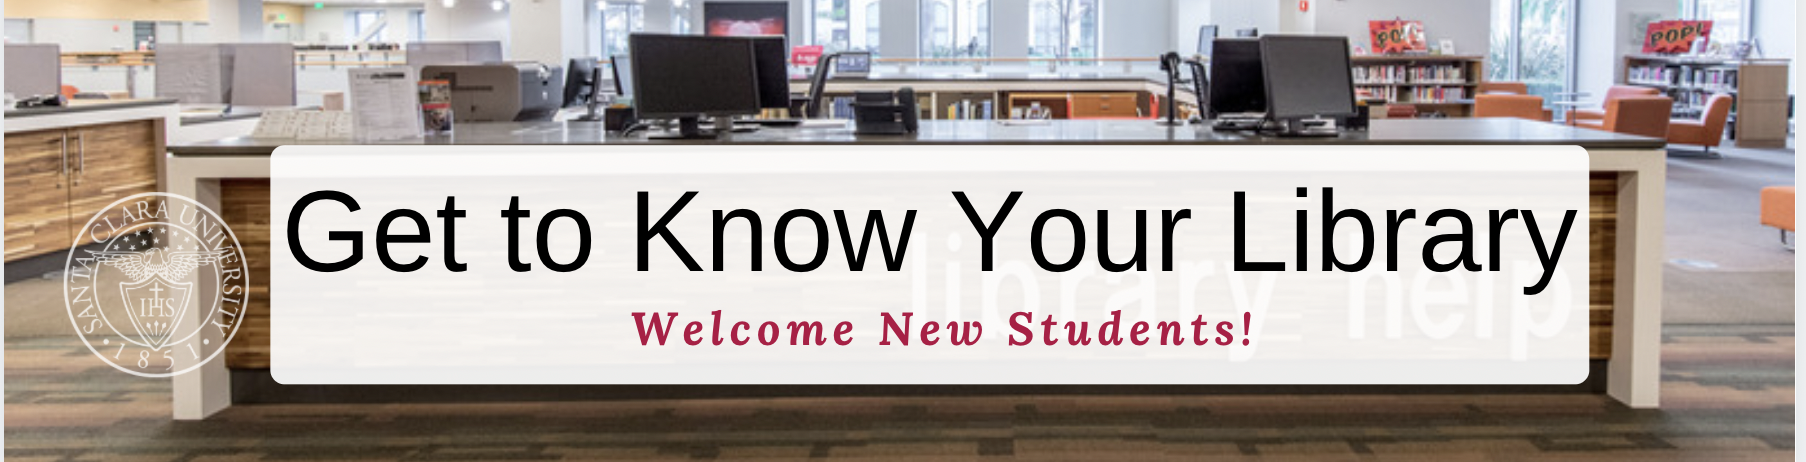 Welcome New Students! Get to Know Your Library